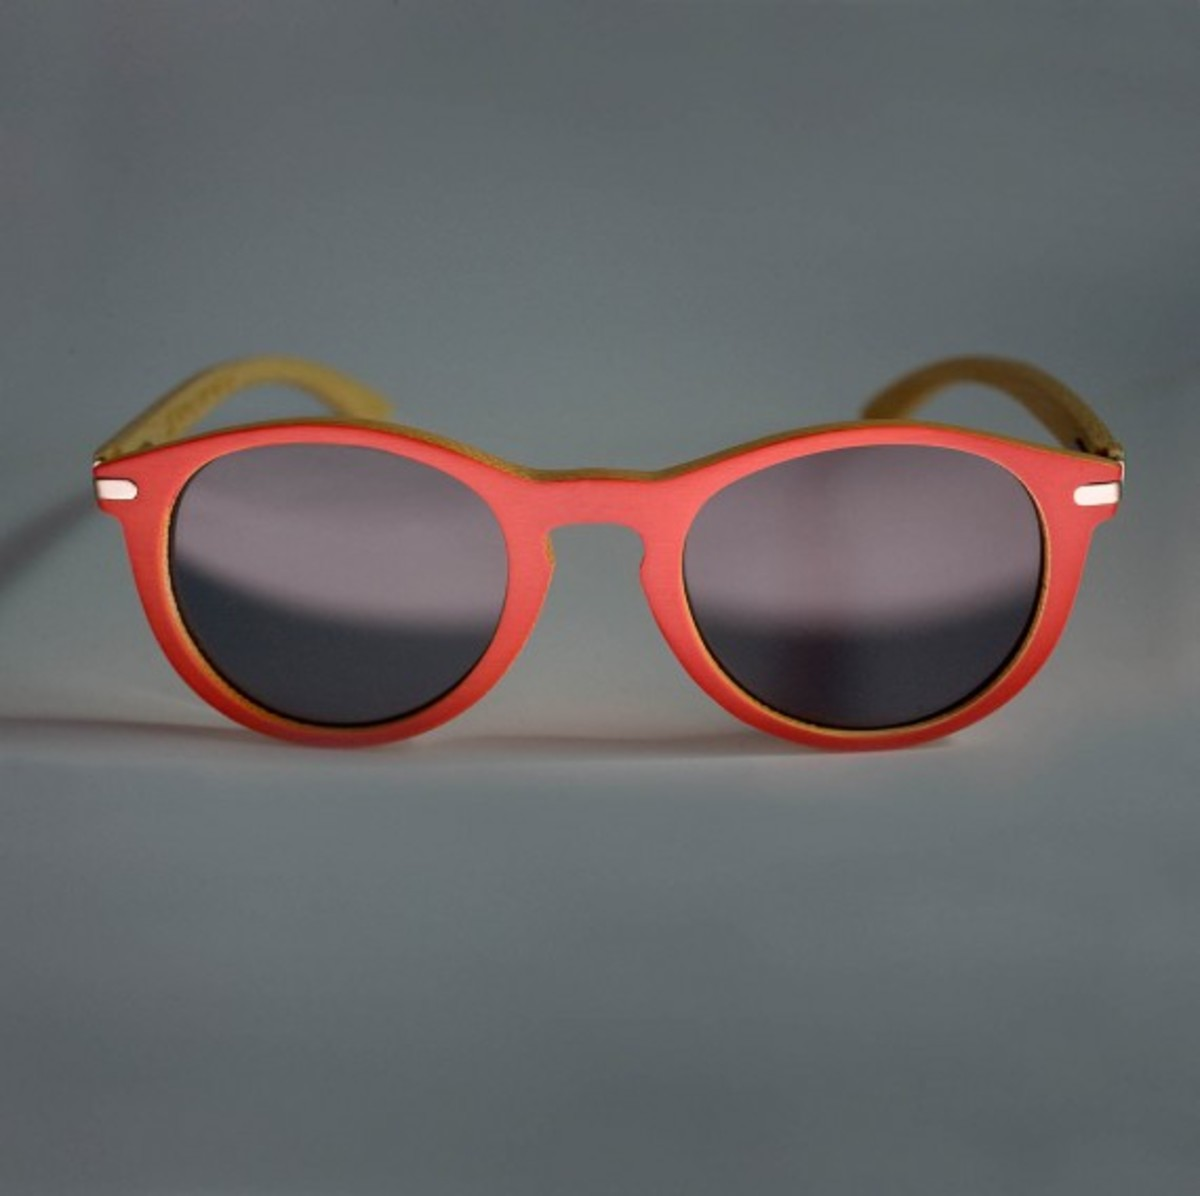 waiting-for-the-sun-rockwell-parra-sunglasses-02